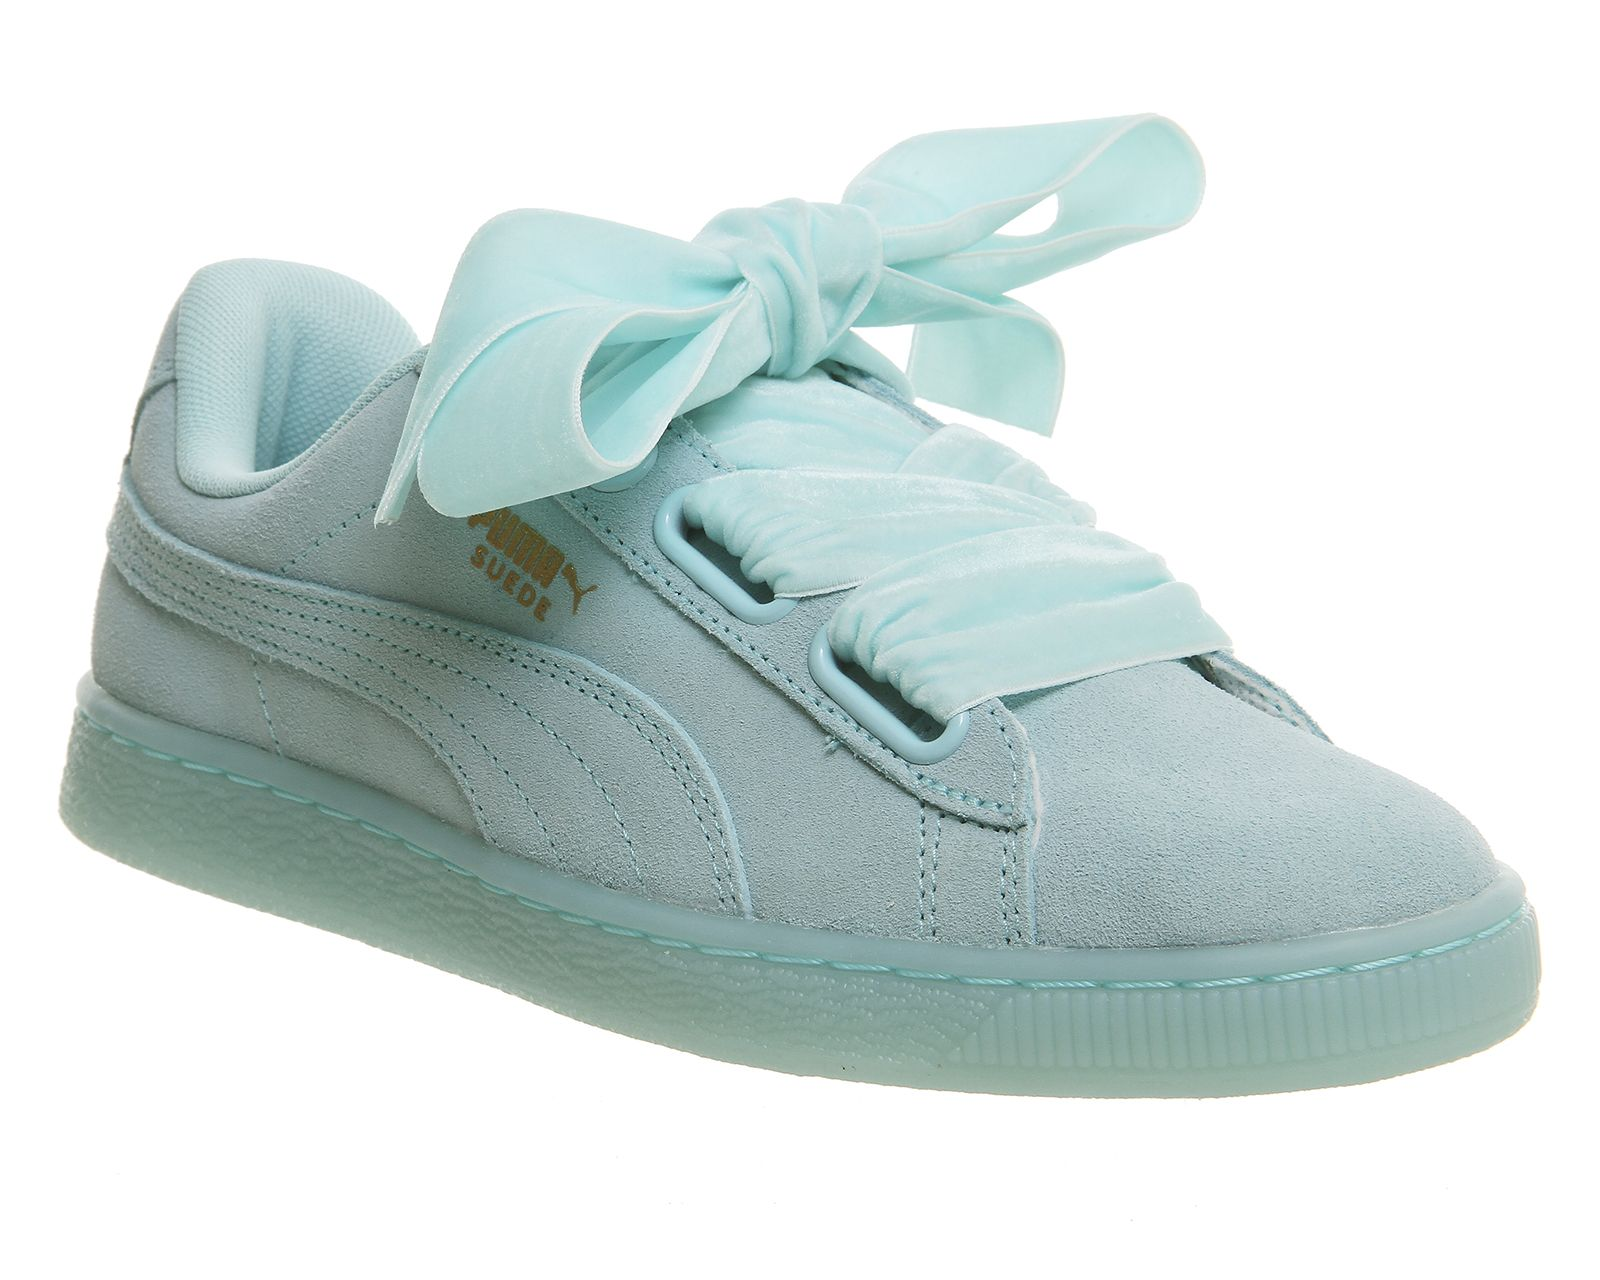 Puma Prism Heart Suede Heart Trainers in Mint Green